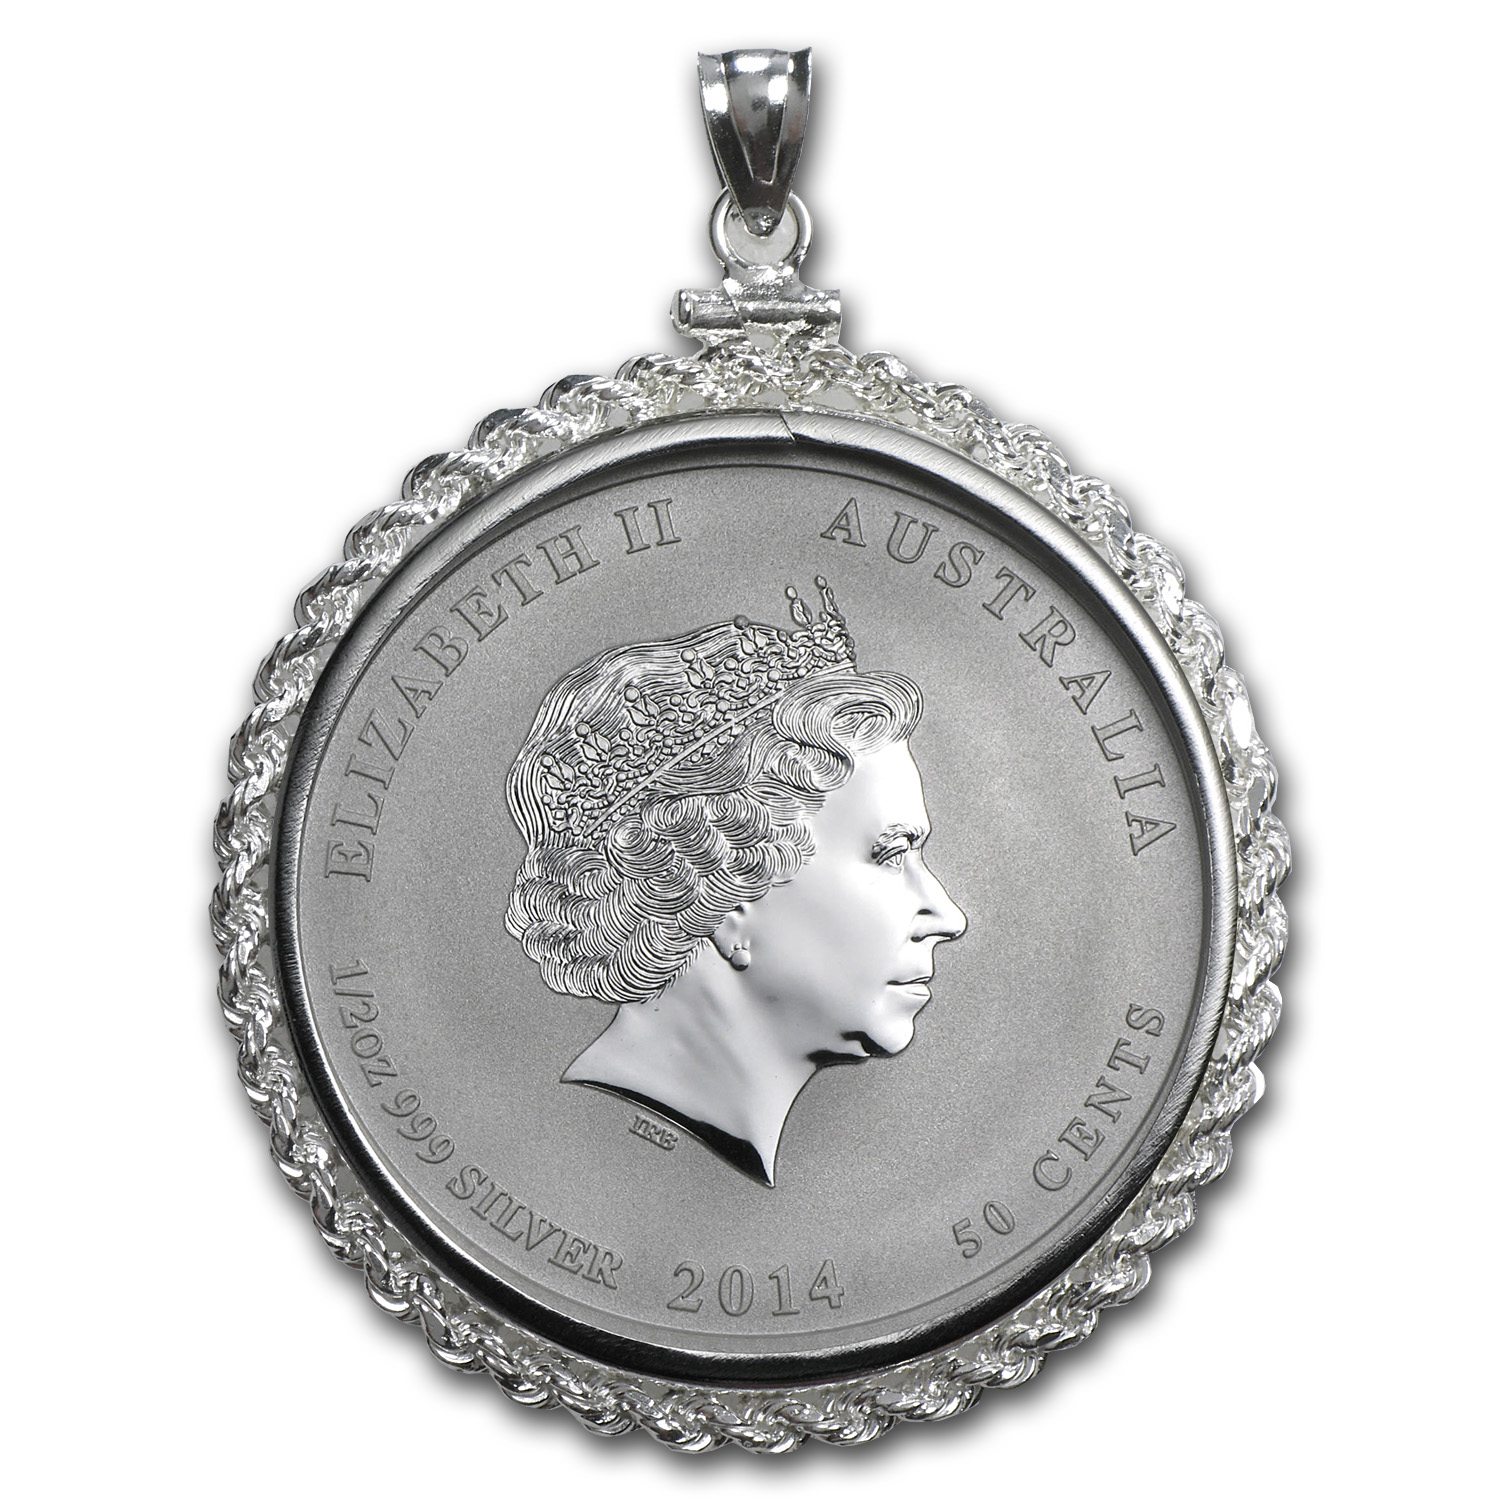 2014 1/2 oz Silver Horse Pendant (Screw-Top Rope Bezel)